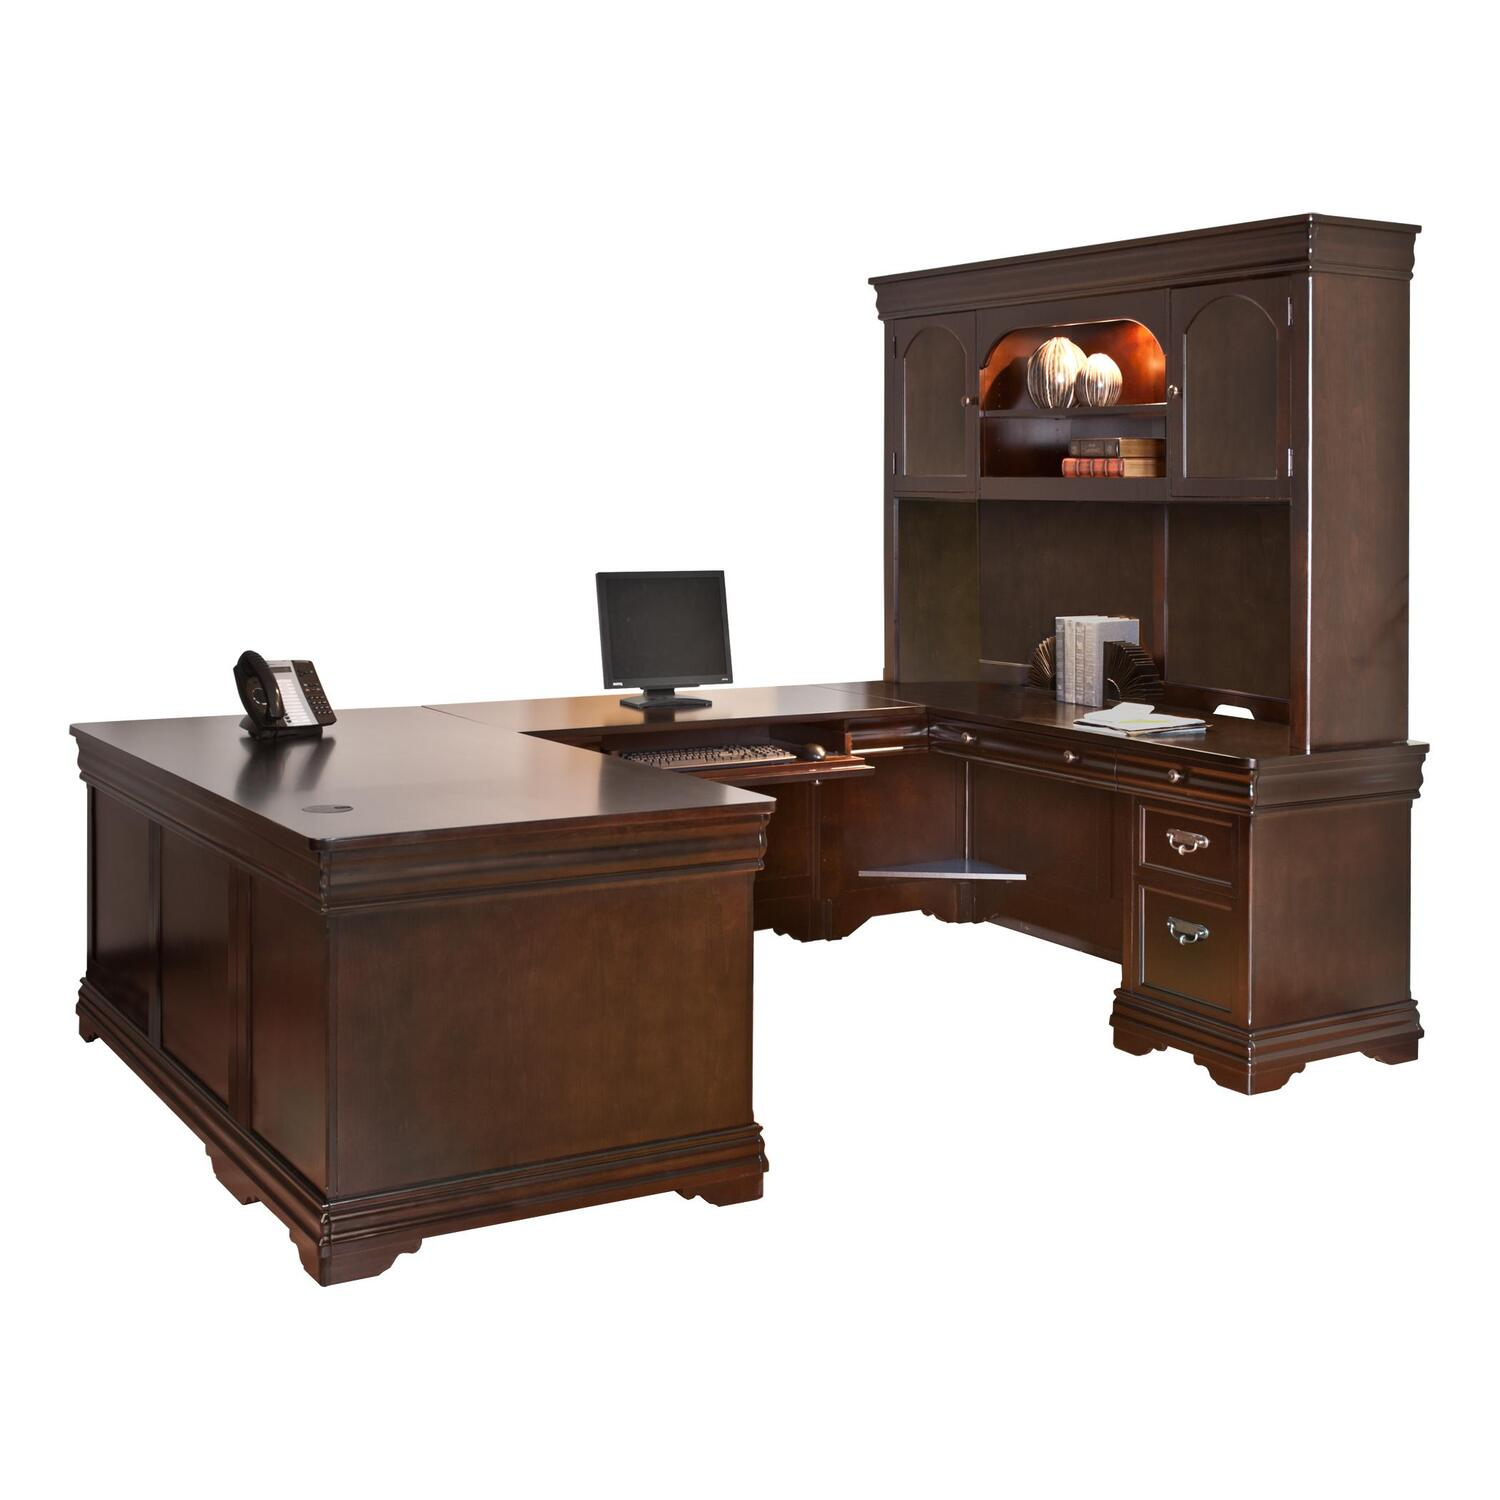 Martin Furniture Beaumont U Shaped Desk by OJ CommerceBT684R C SET $